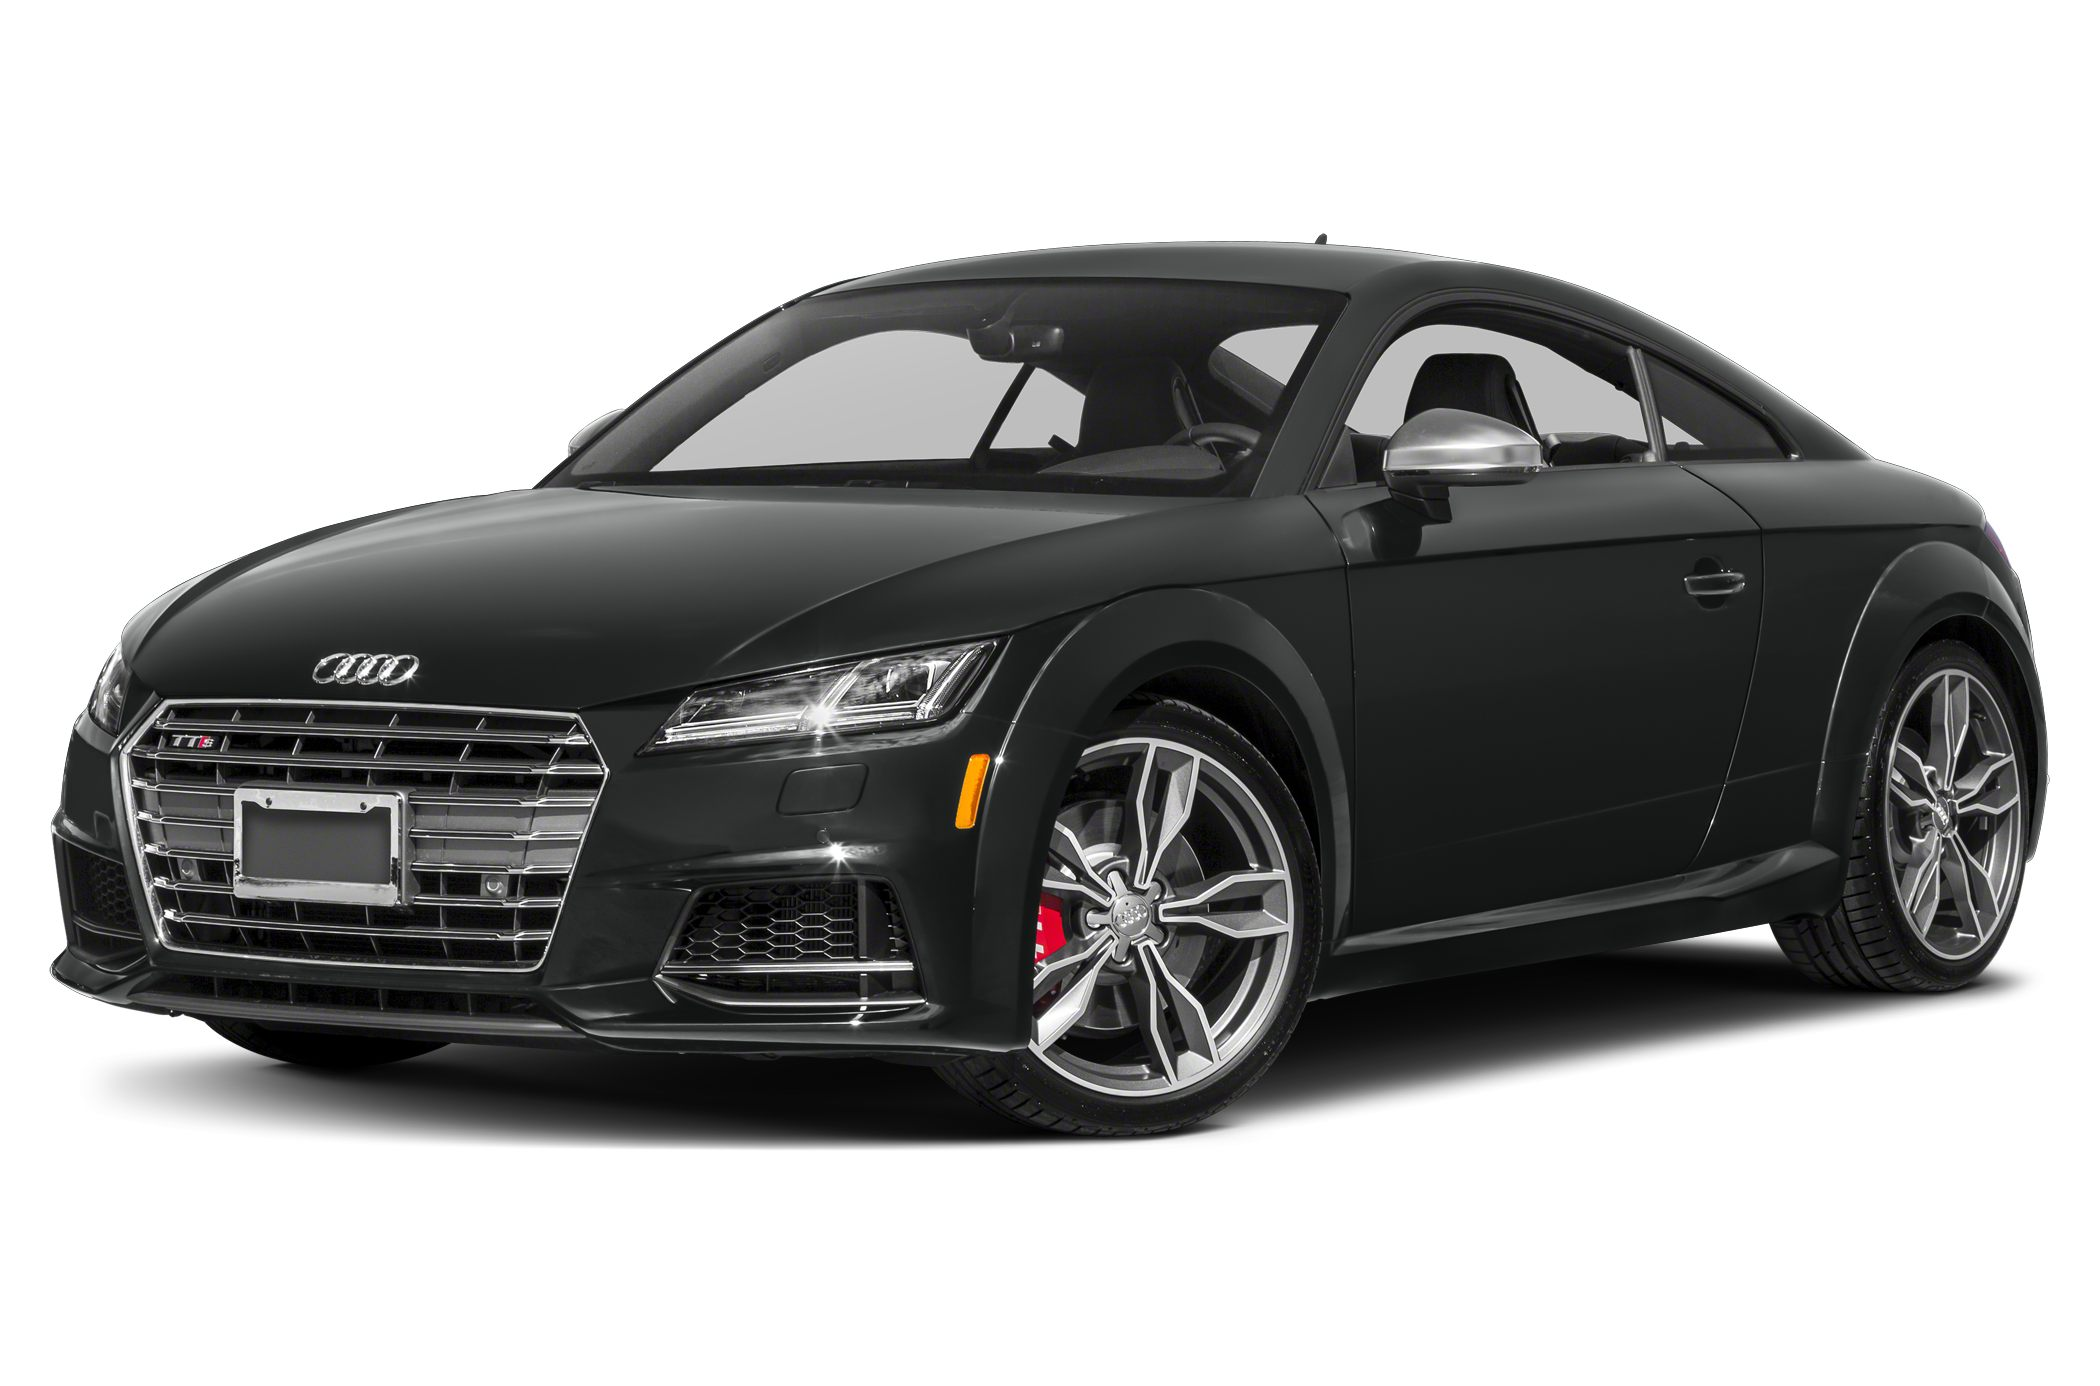 2016AudiTTS